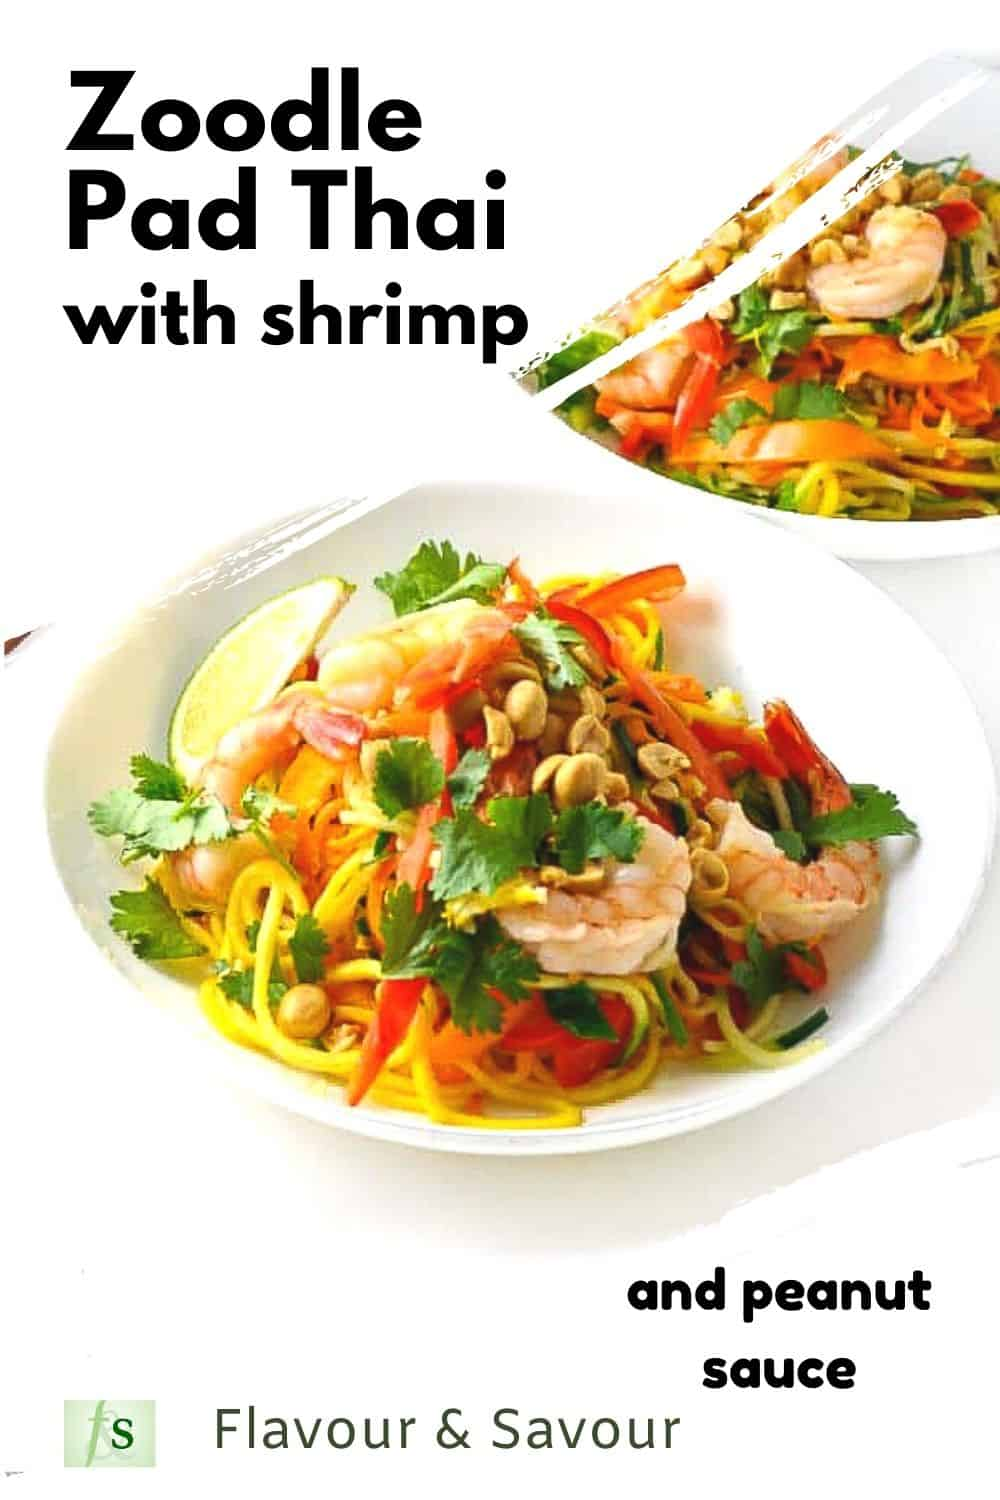 Pinterest pin for Zoodle Pan Thai with shrimp and peanut sauce